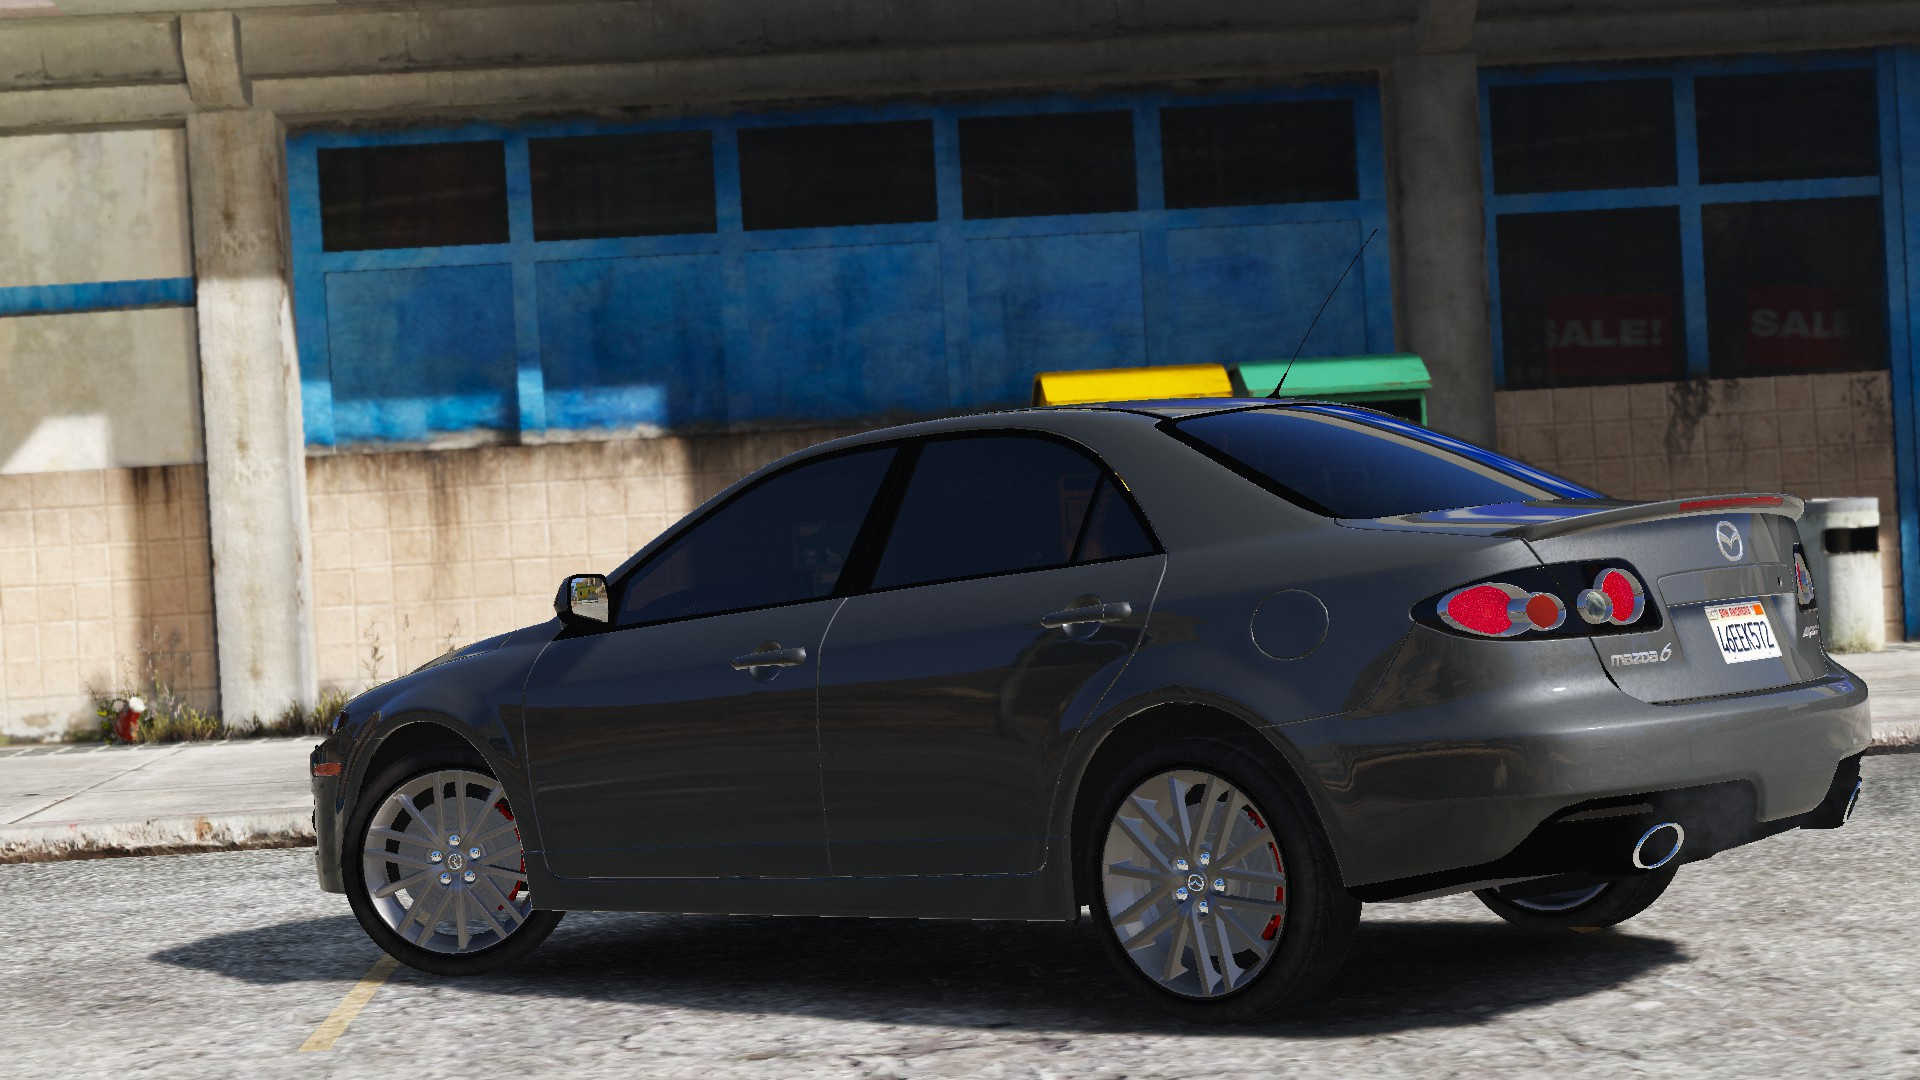 2006 mazda 6 mps gta5 for Mazdaspeed 6 exterior mods